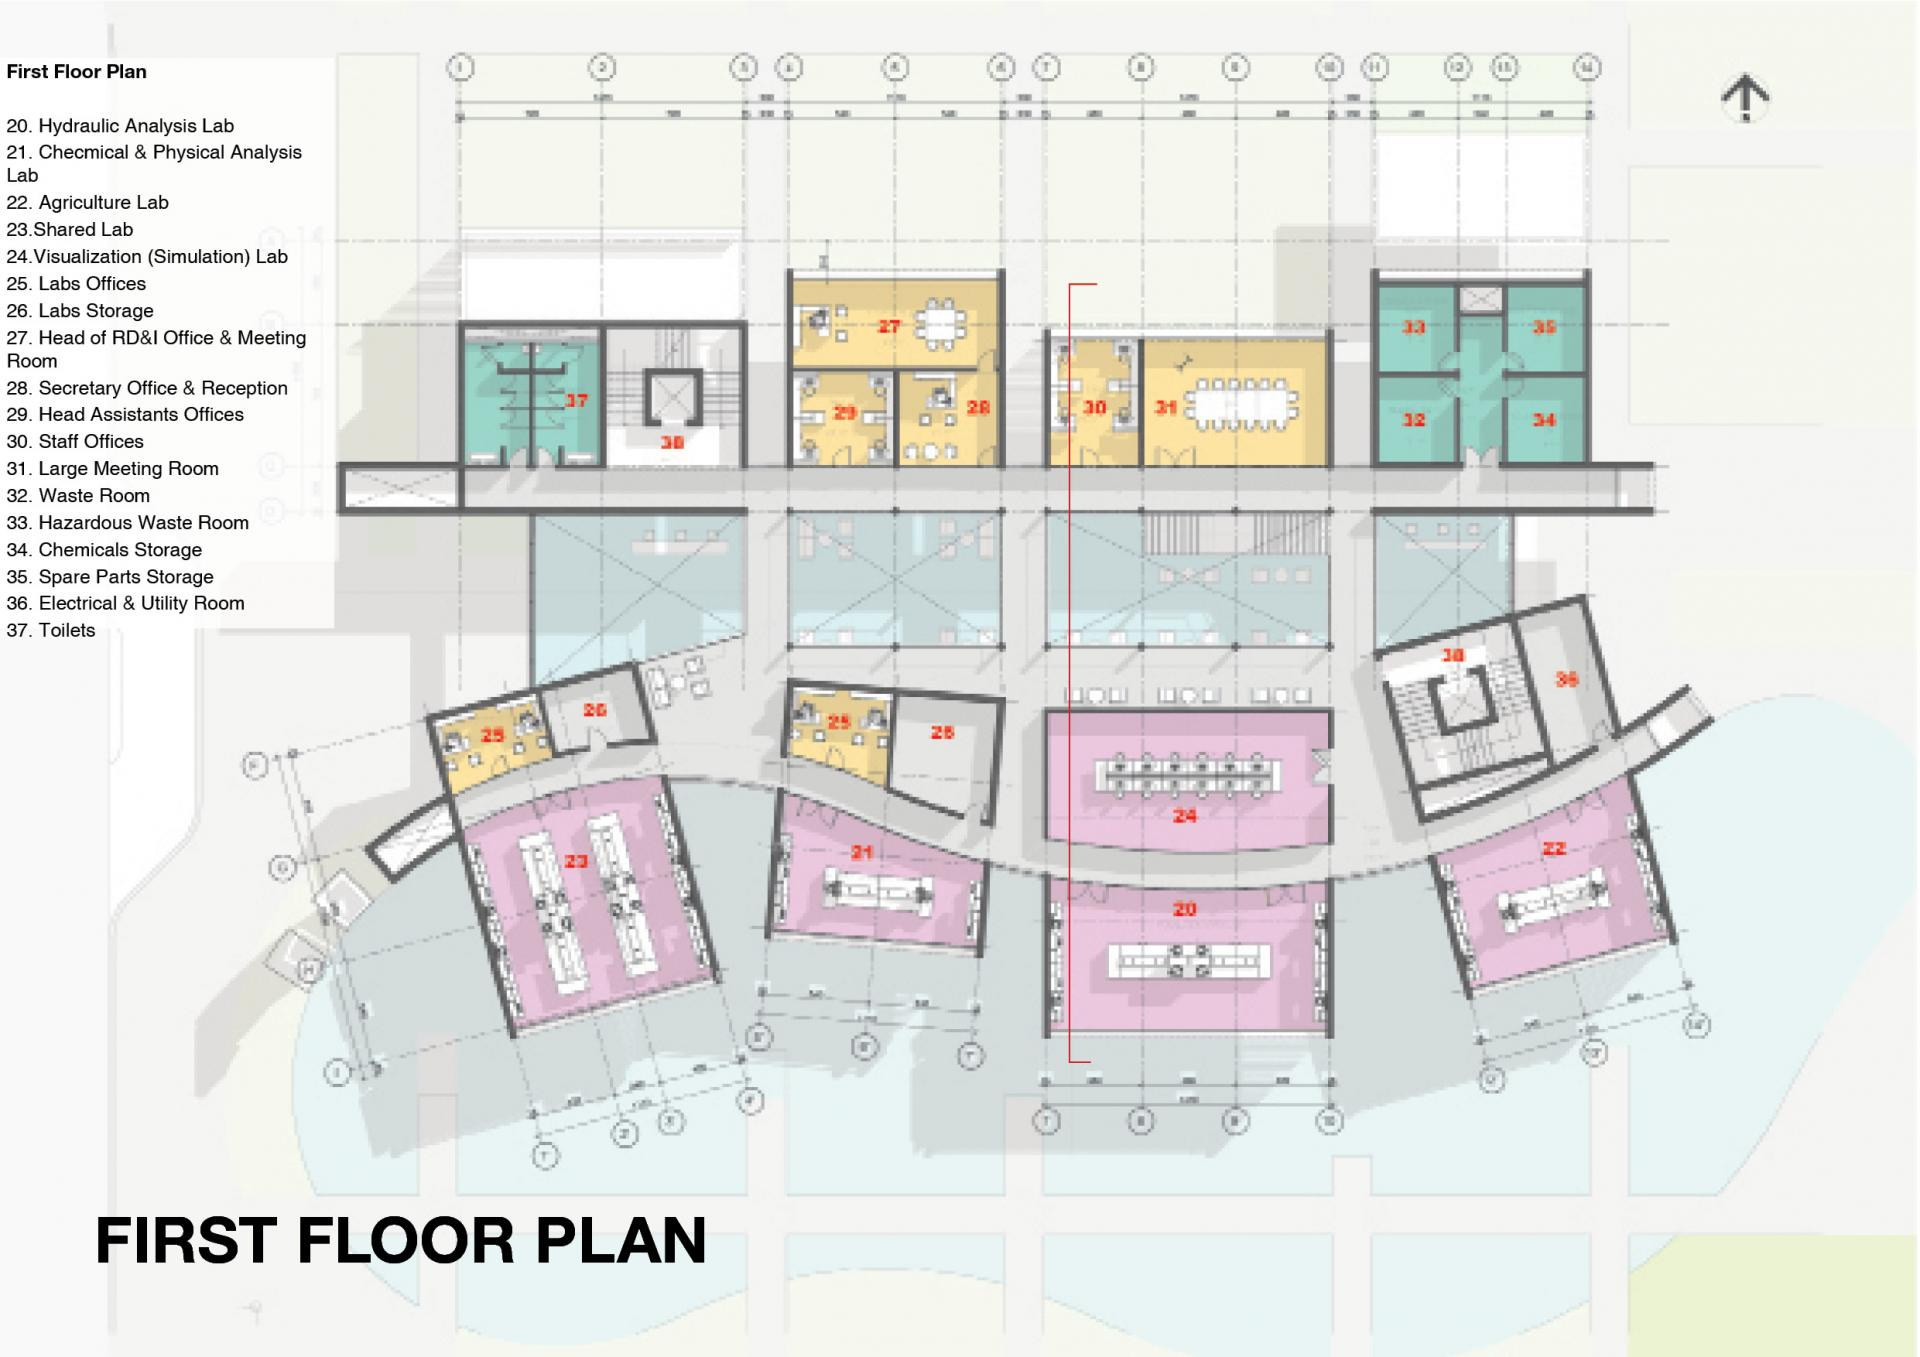 Arab Potash Company - RD&I Center First Floor Plan